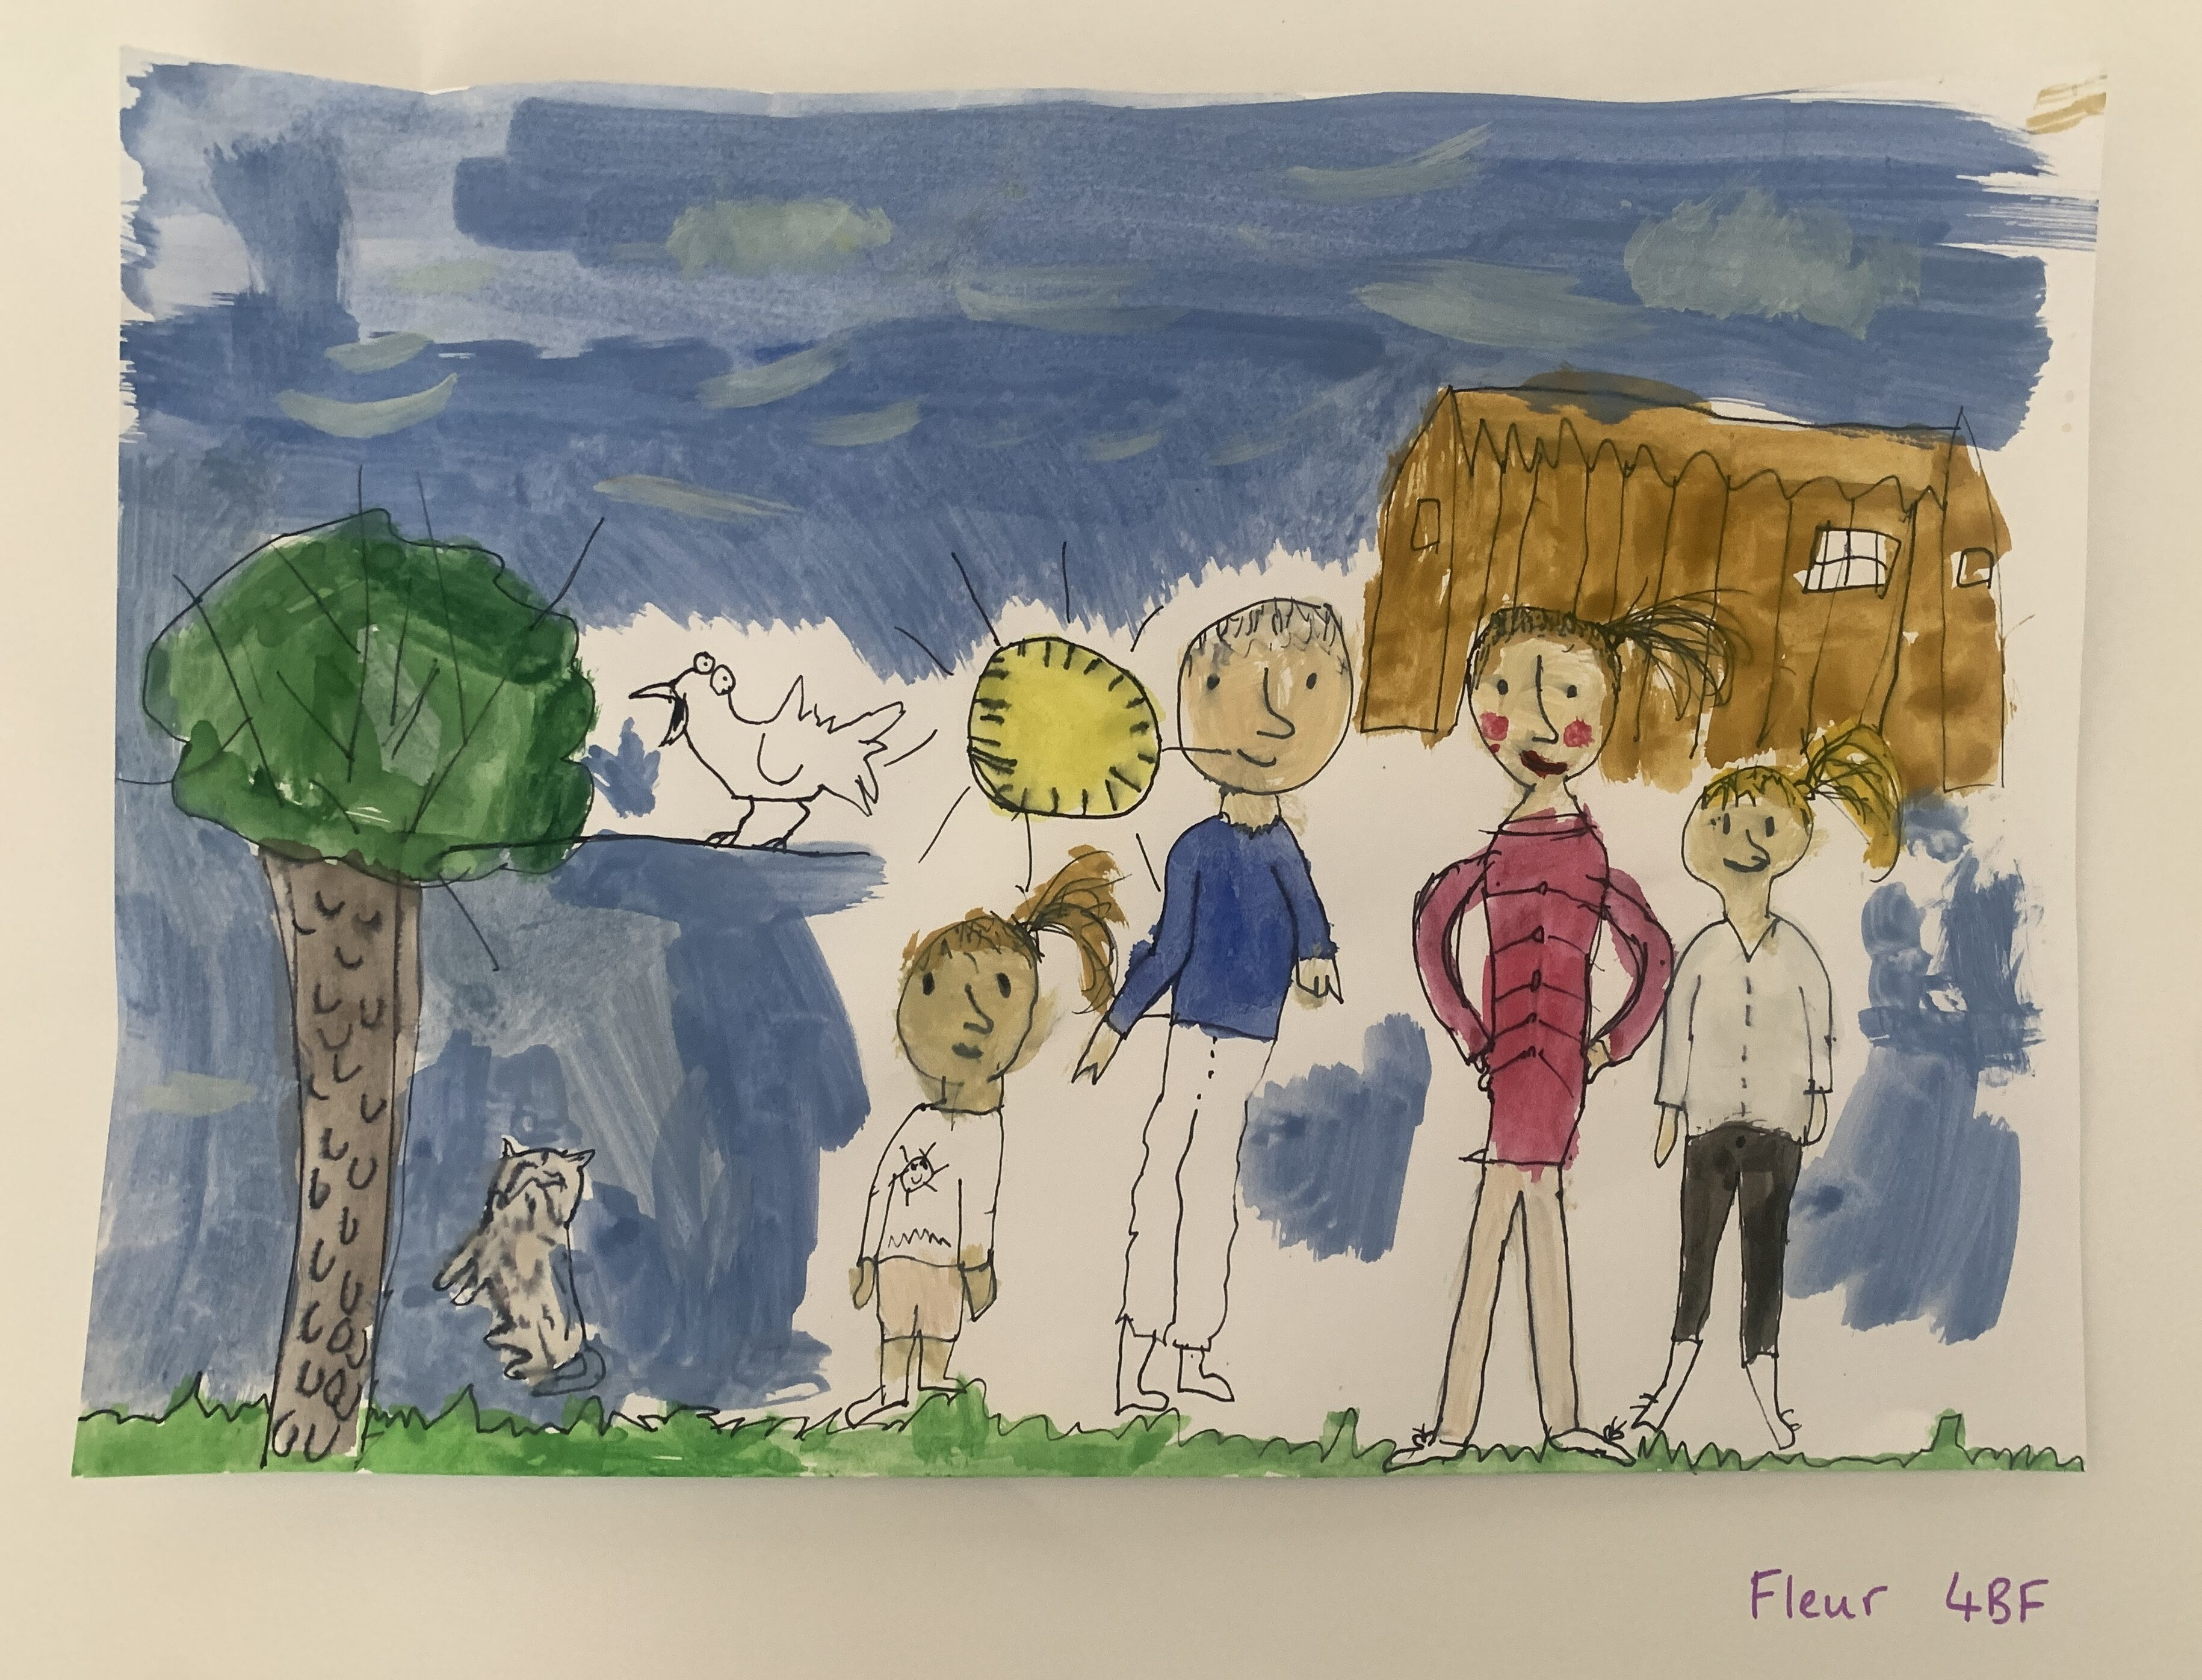 The Great Outdoors by Fleur